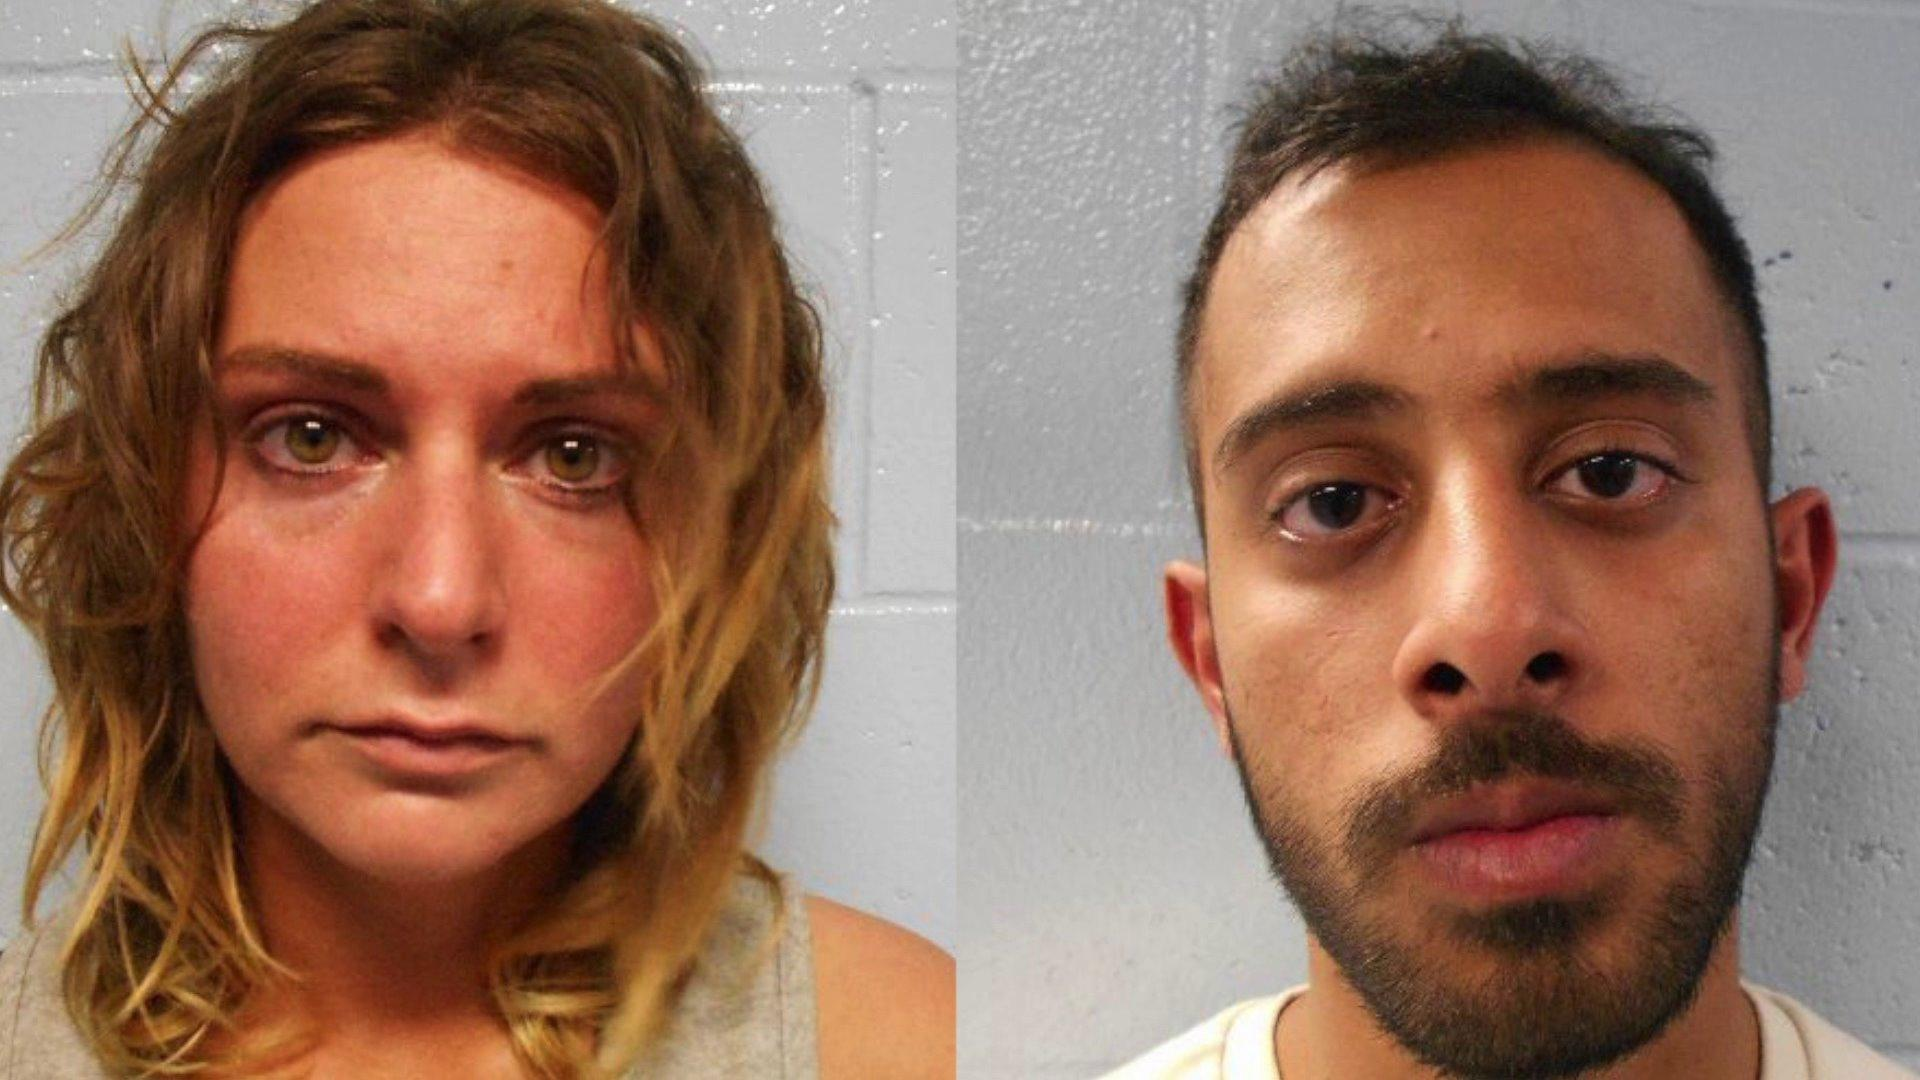 Oklahoma Couple Arrested For Child Neglect After Eight-Year-Old Girl Found Wandering, Begging For Food